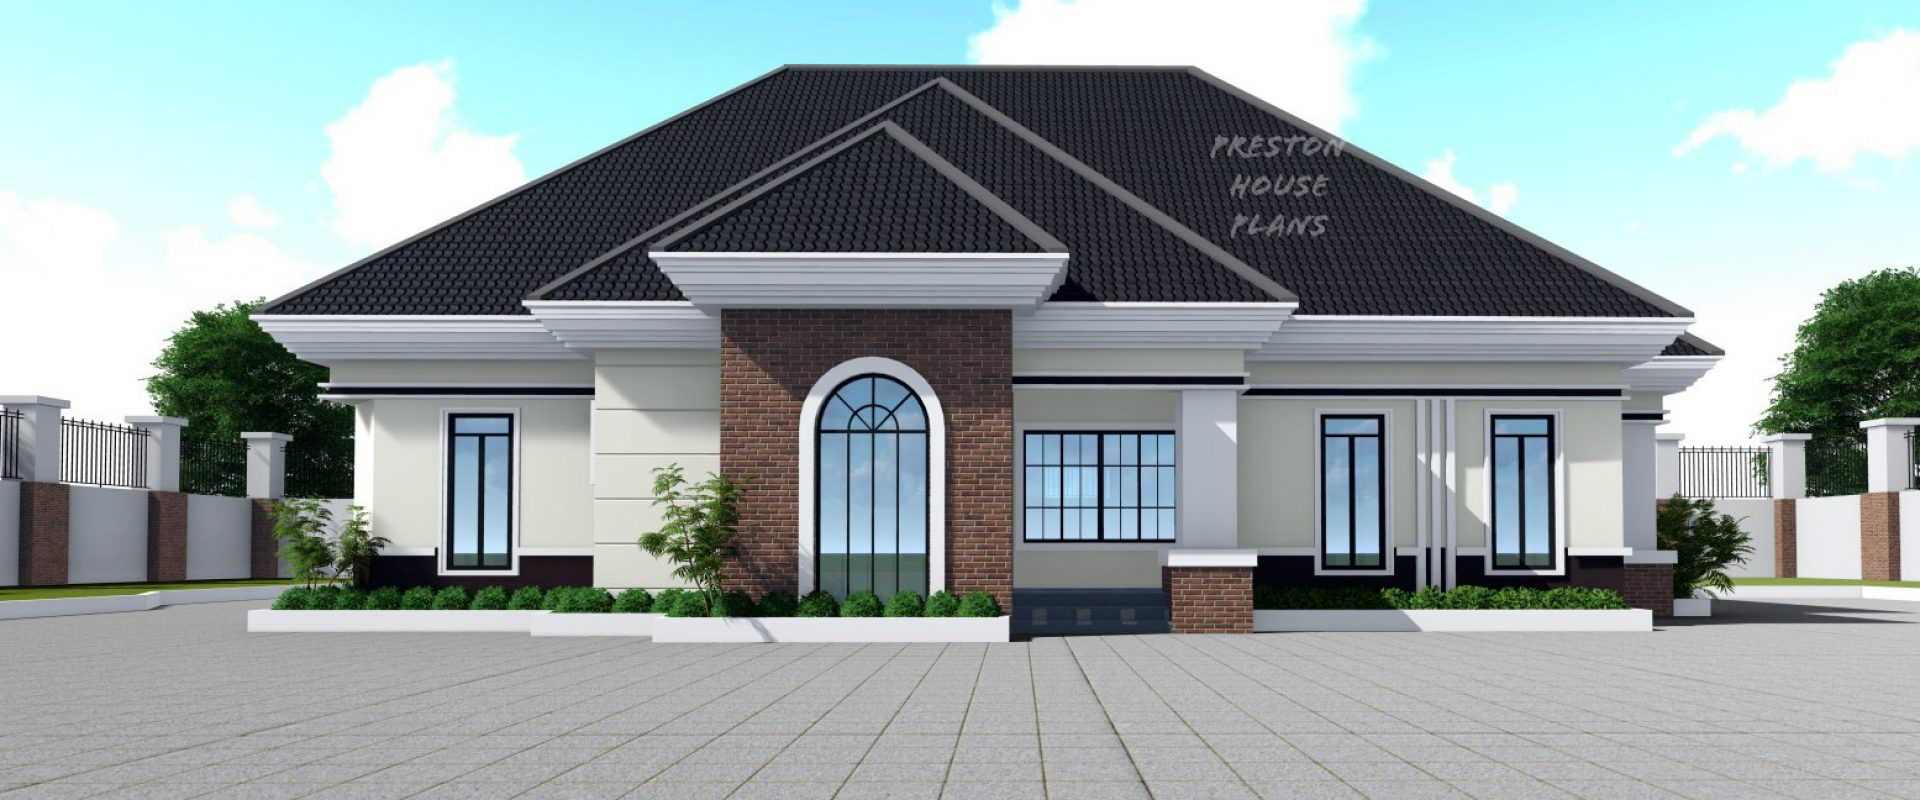 Four Bedroom Bungalow Featuring Tall Windows